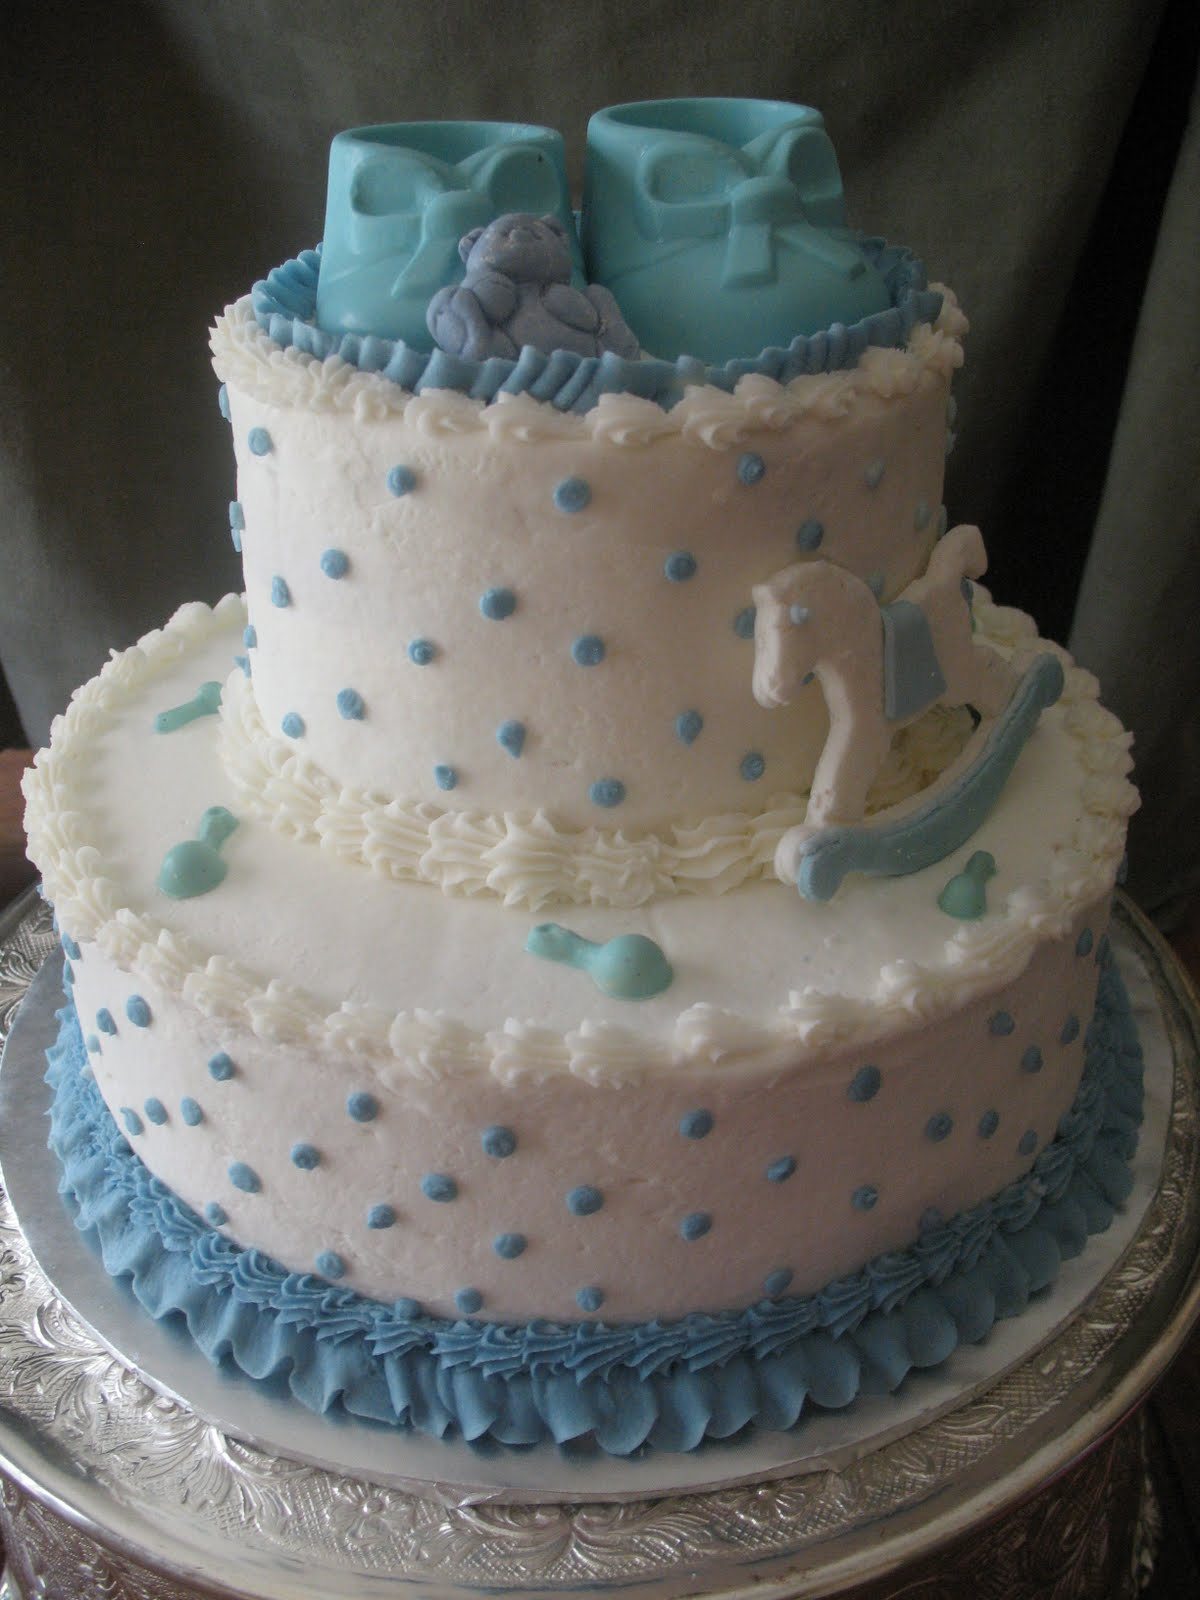 Baby Shower Cakes: May 2015